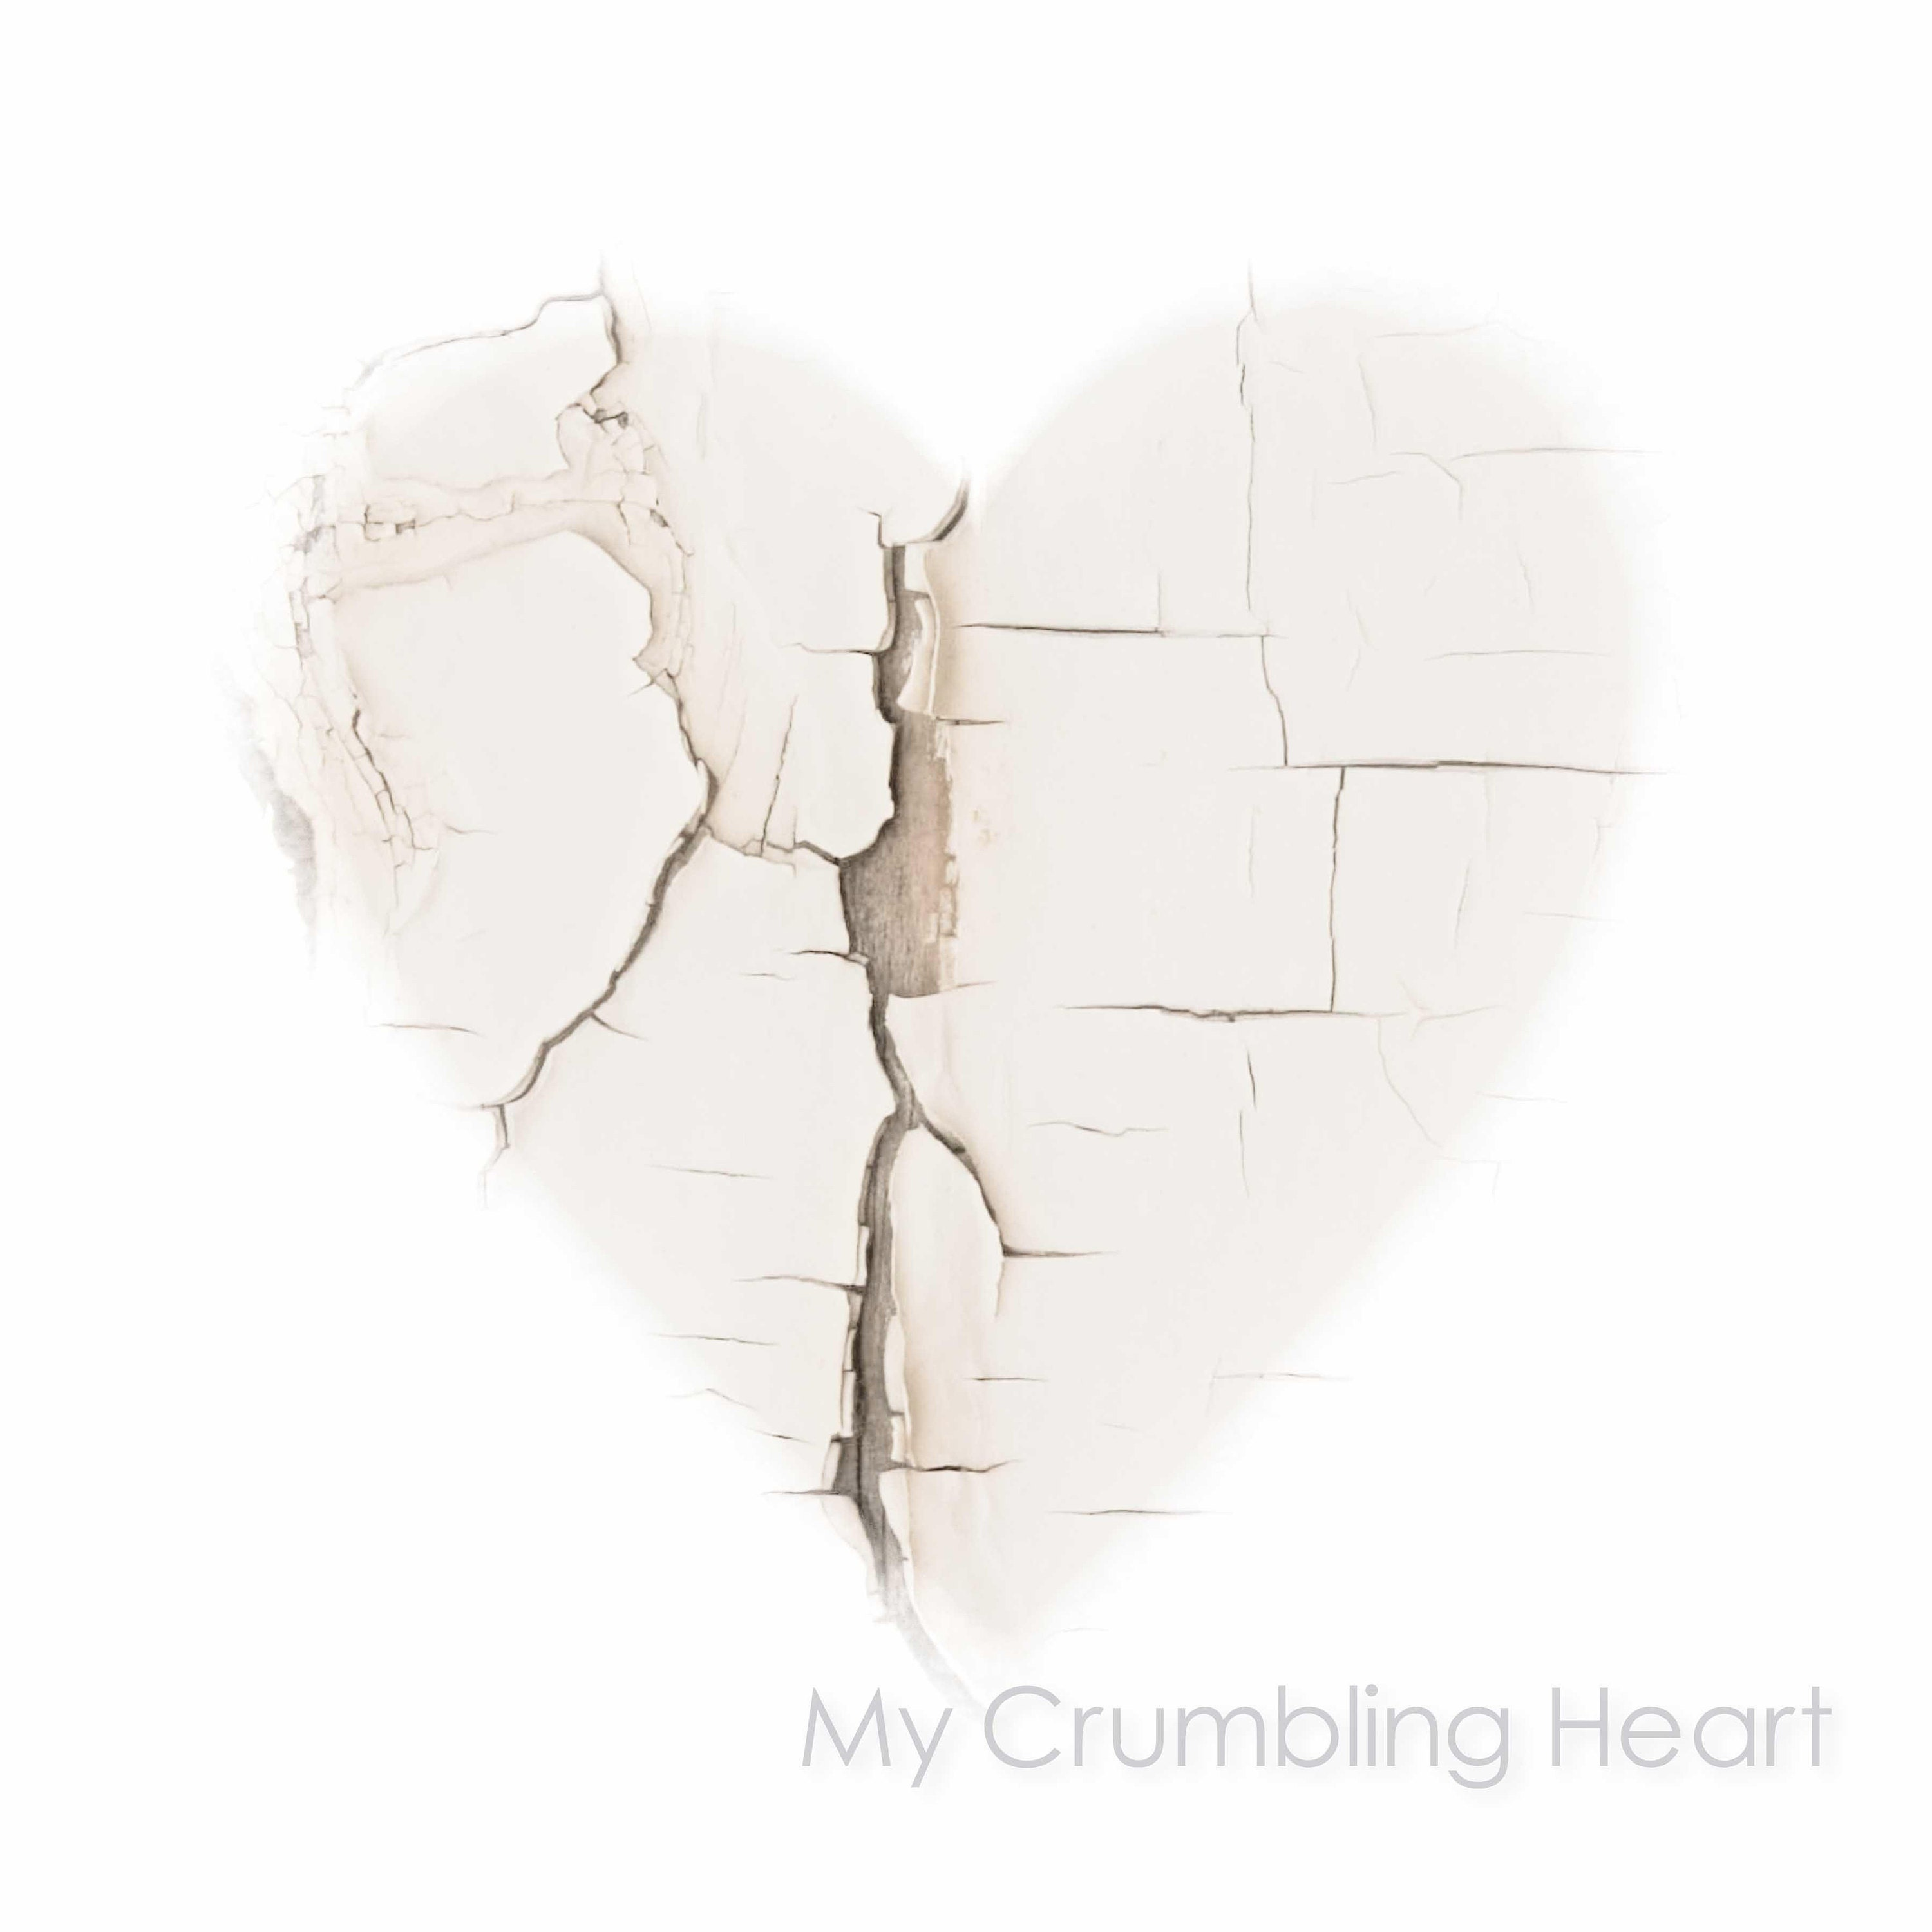 delicate white heart fine art print- unframed limited edition prints and ready to hang wall art- white heart with peeling paint textures- available in a range of sizes and finishes including  canvas, art panel and box frame